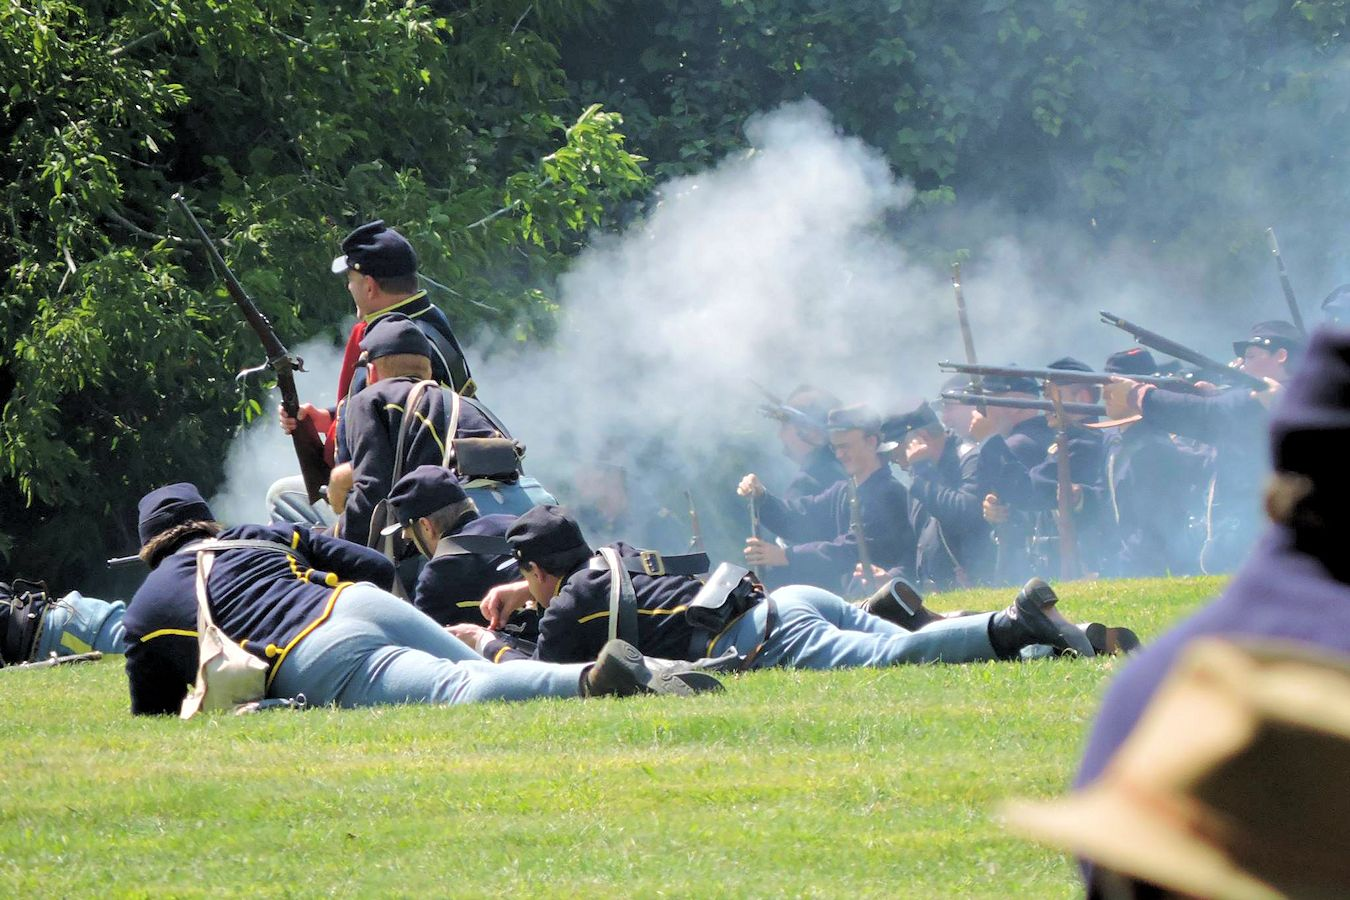 Jackson Civil War Reenactment